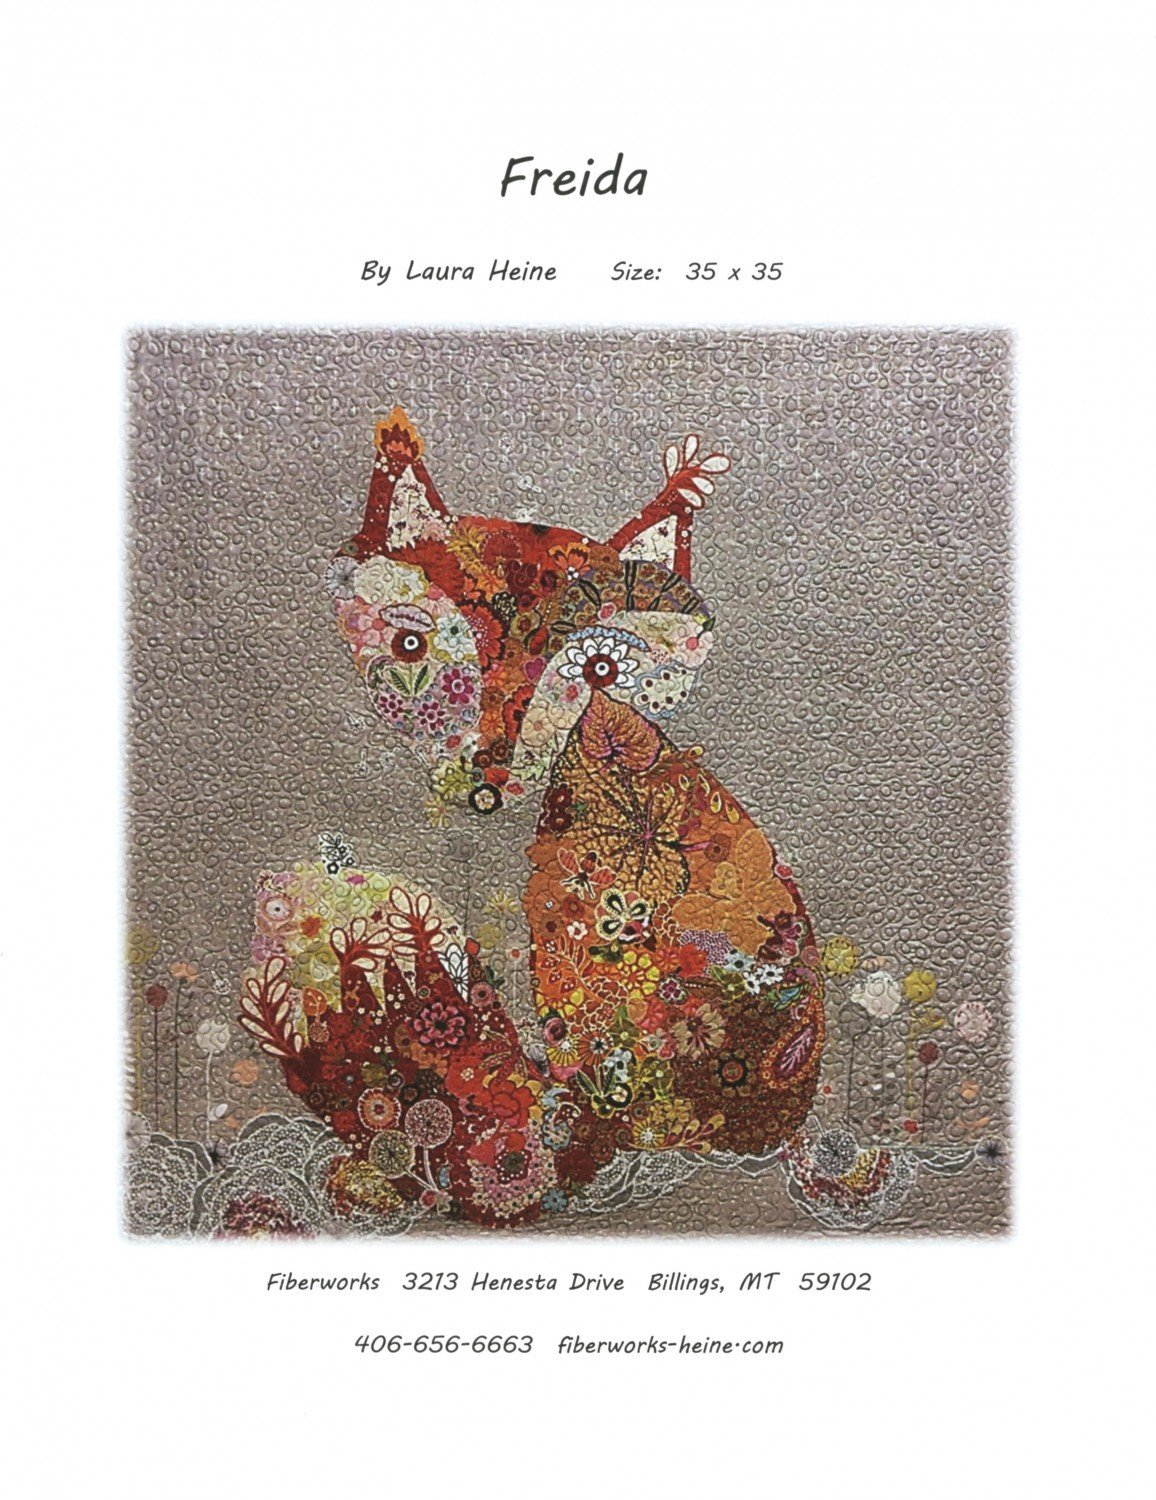 Fiberworks Freida Fox Collage Wall Hanging Quilt Pattern by